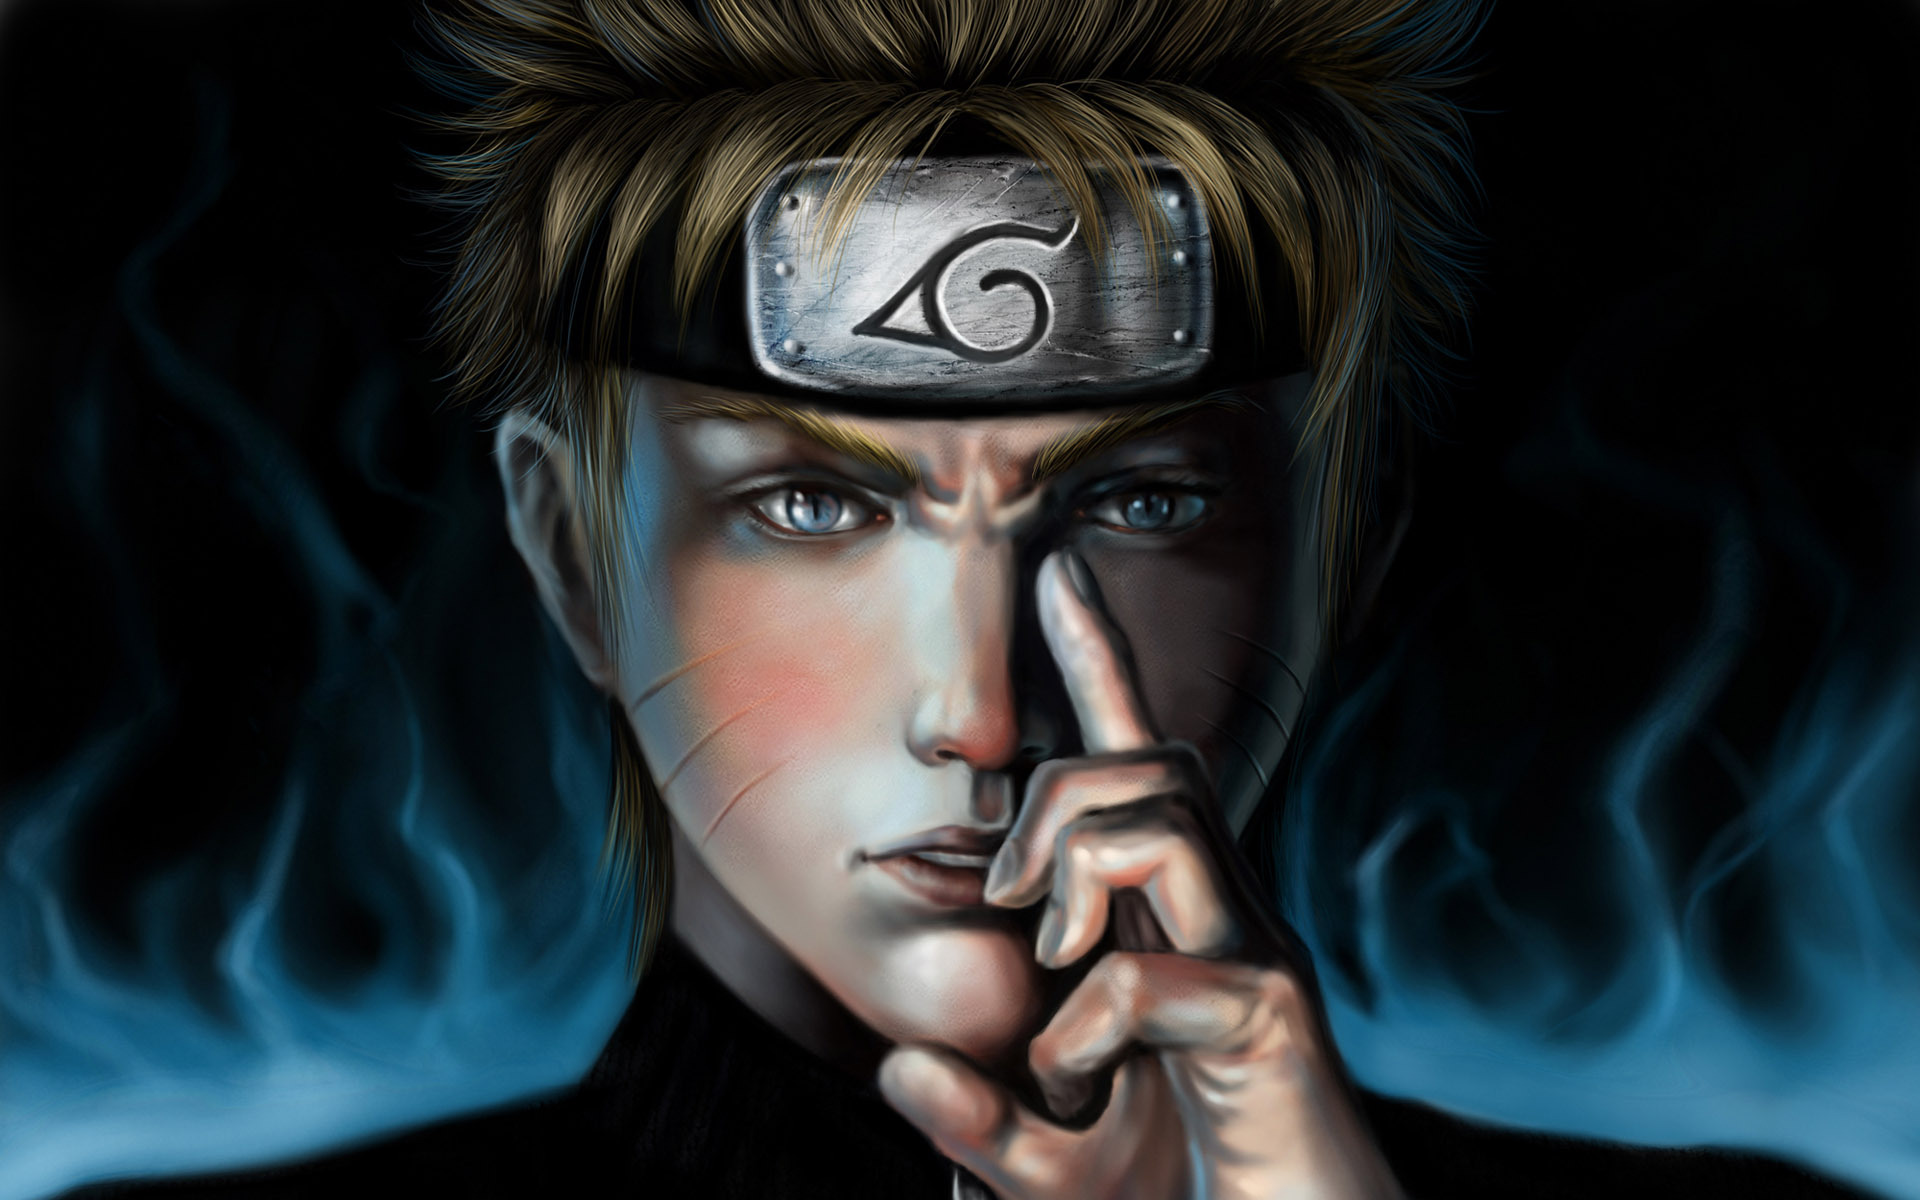 Wallpaper Naruto High Quality - Koleksi Gambar HD |Naruto High Quality Wallpaper